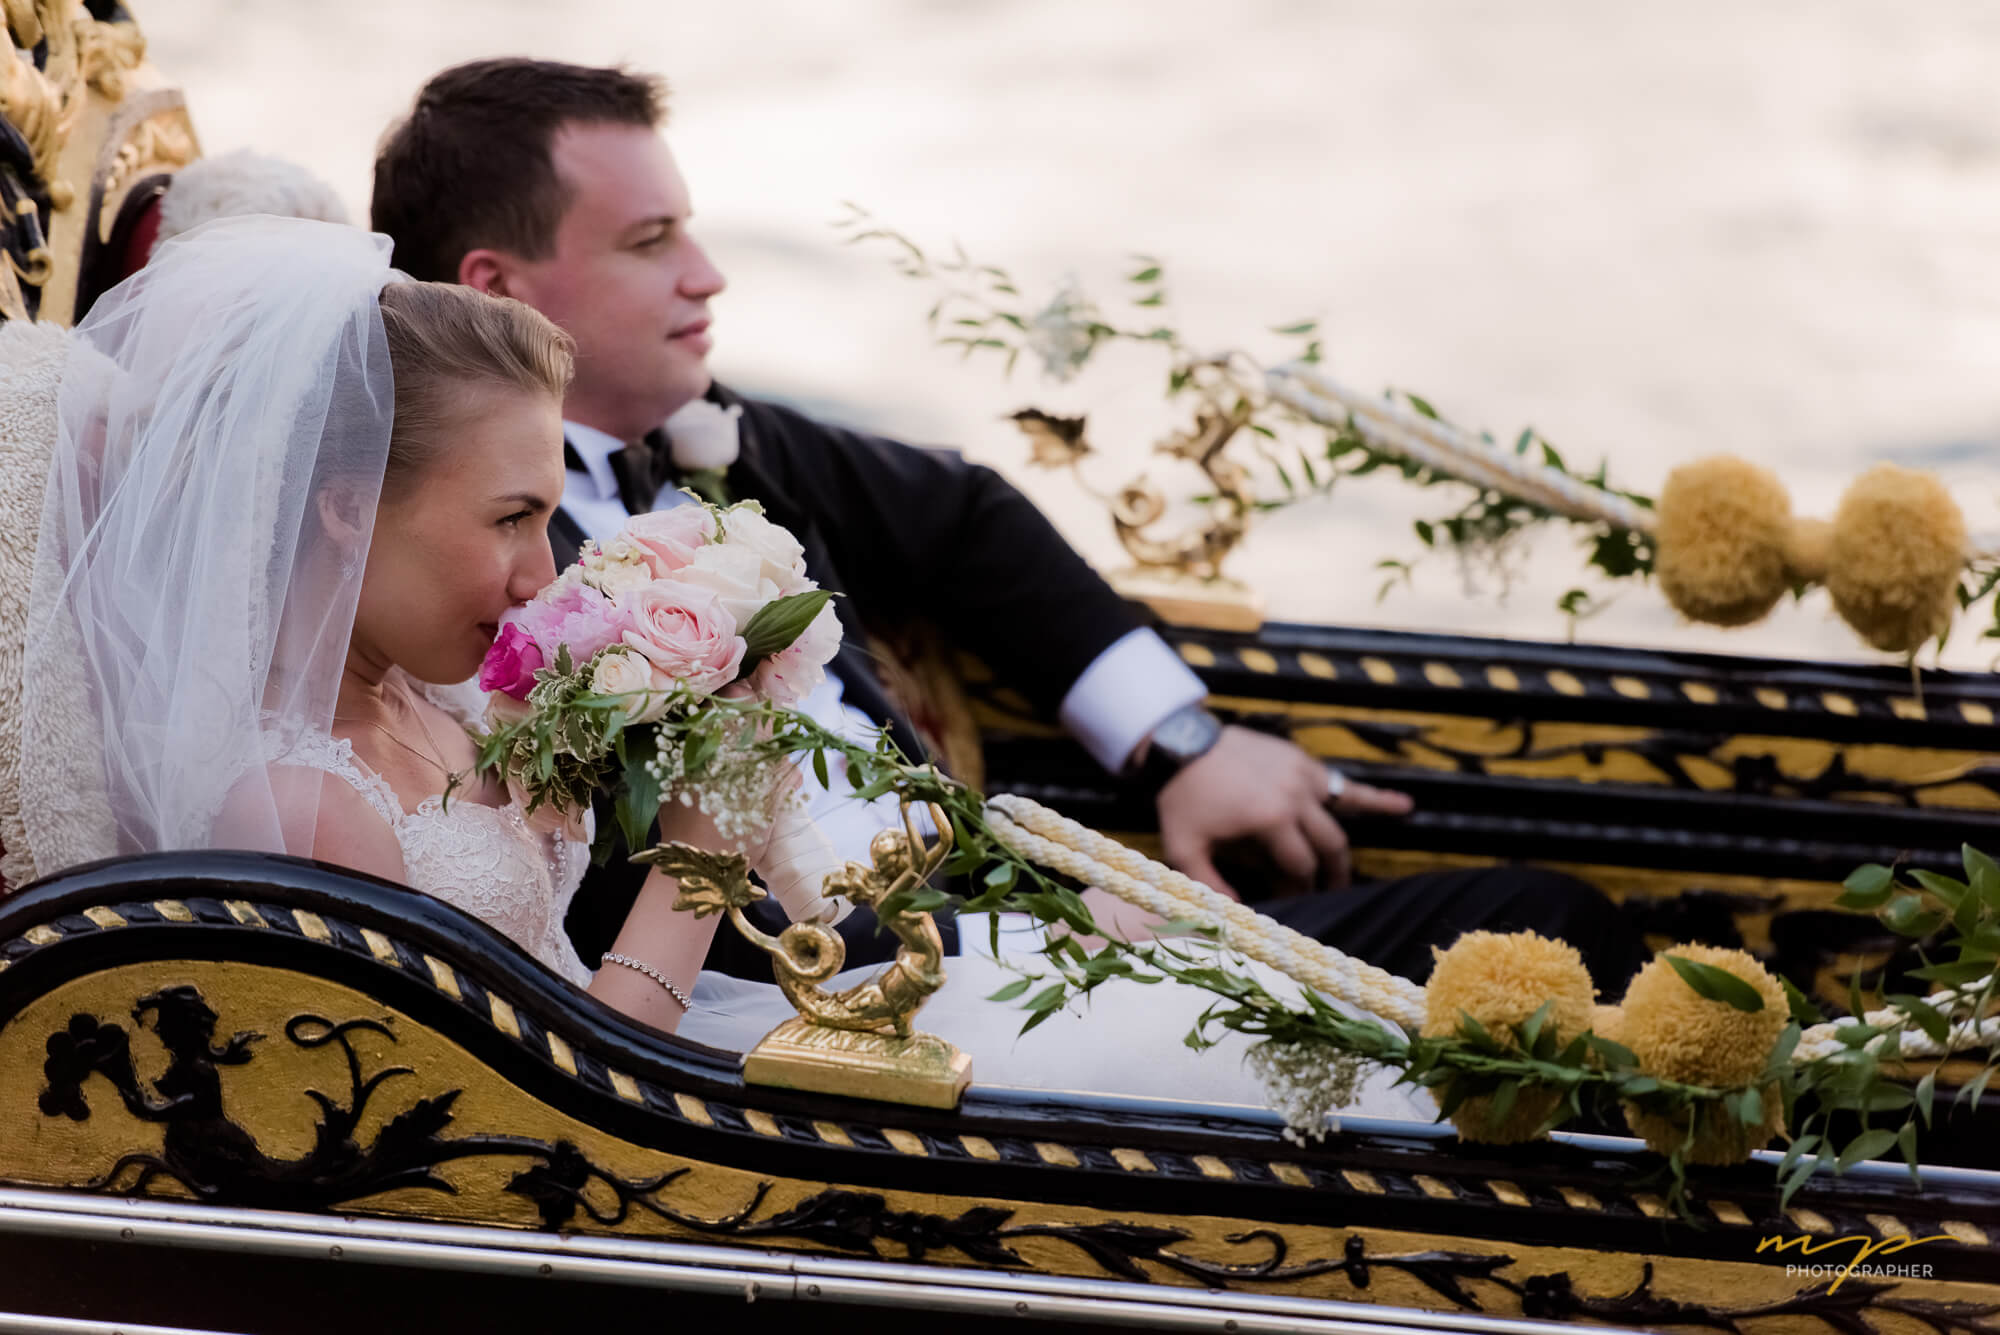 Wedding in a Gondola